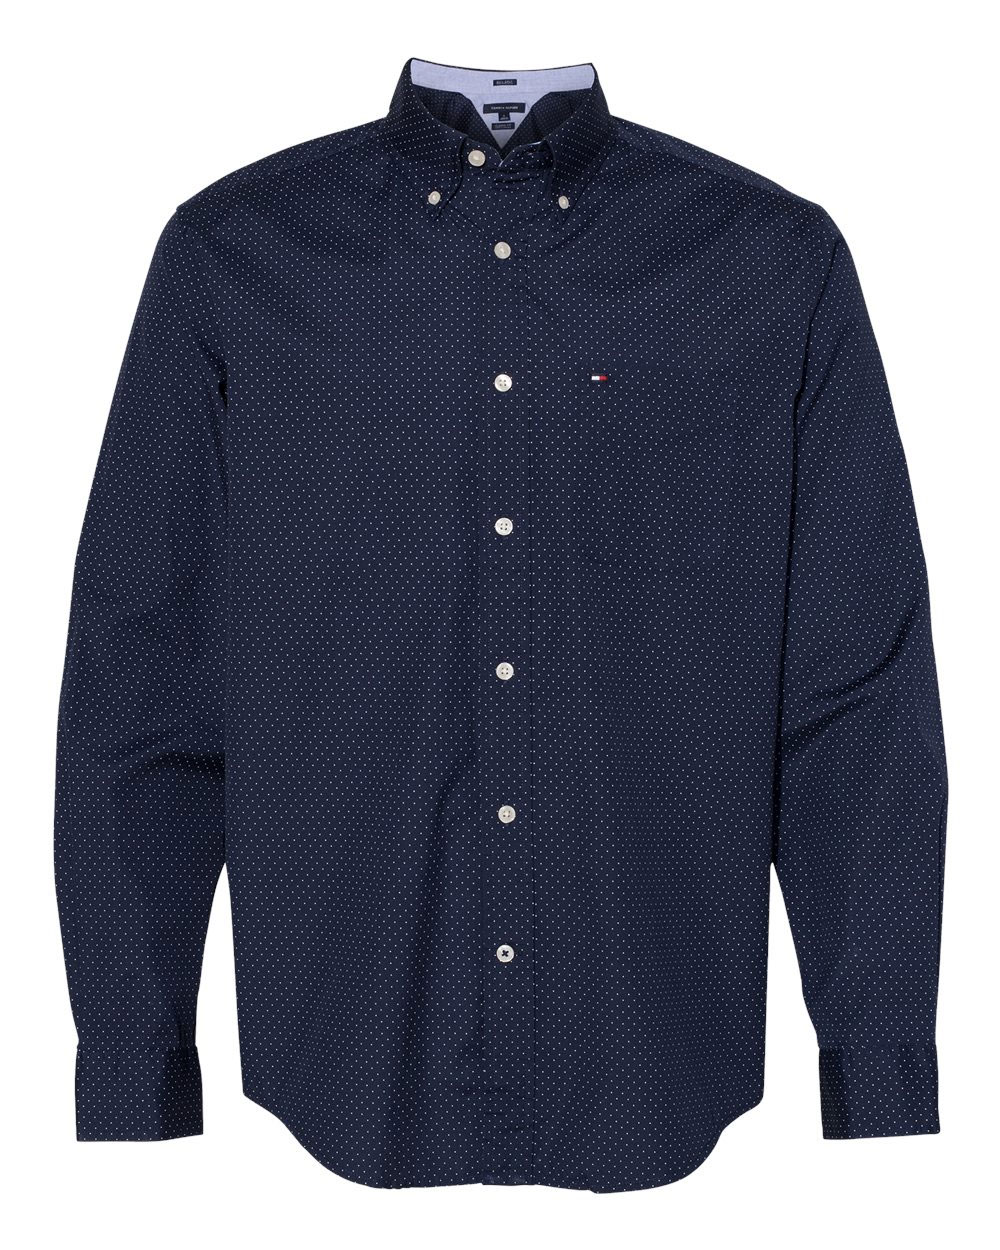 Tommy Hilfiger - Adult Polka Dot Shirt